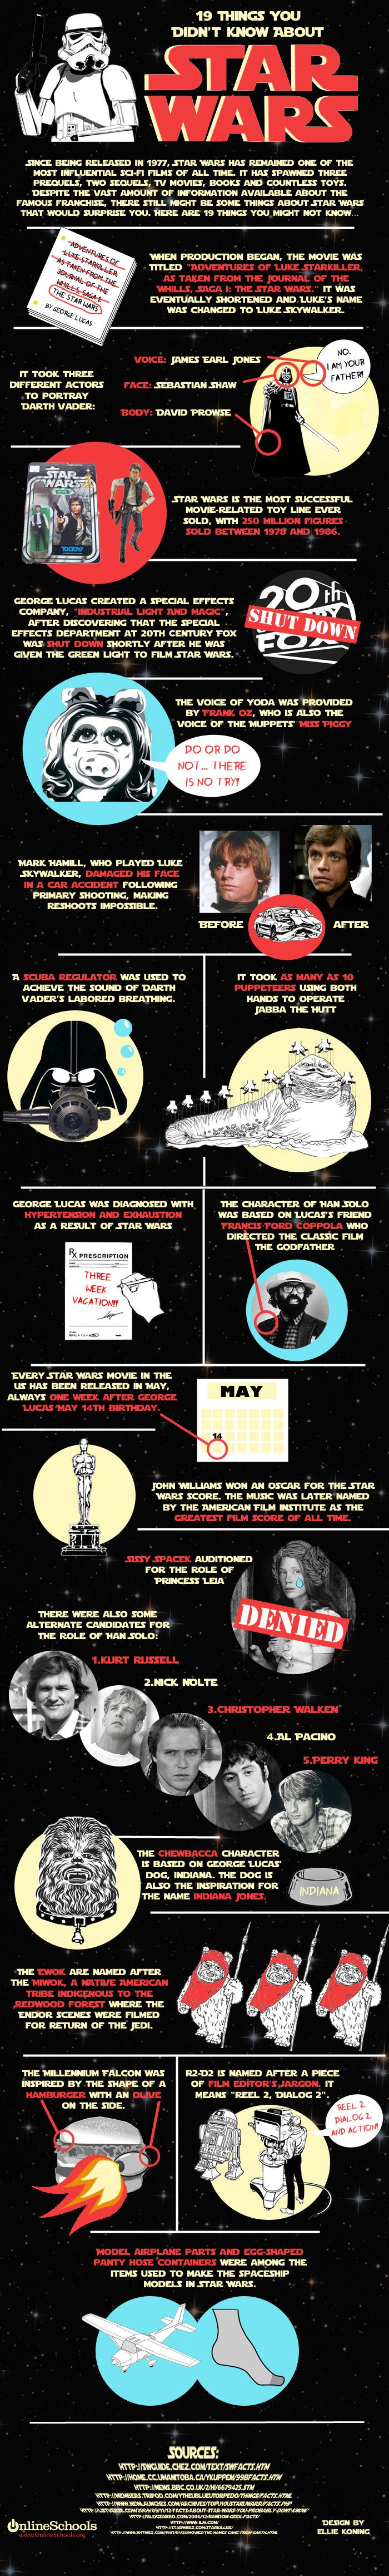 Since its release in 1977 Star Wars has managed to remain one of the most popular and influential sci-fi films of all times.  This infographic examine